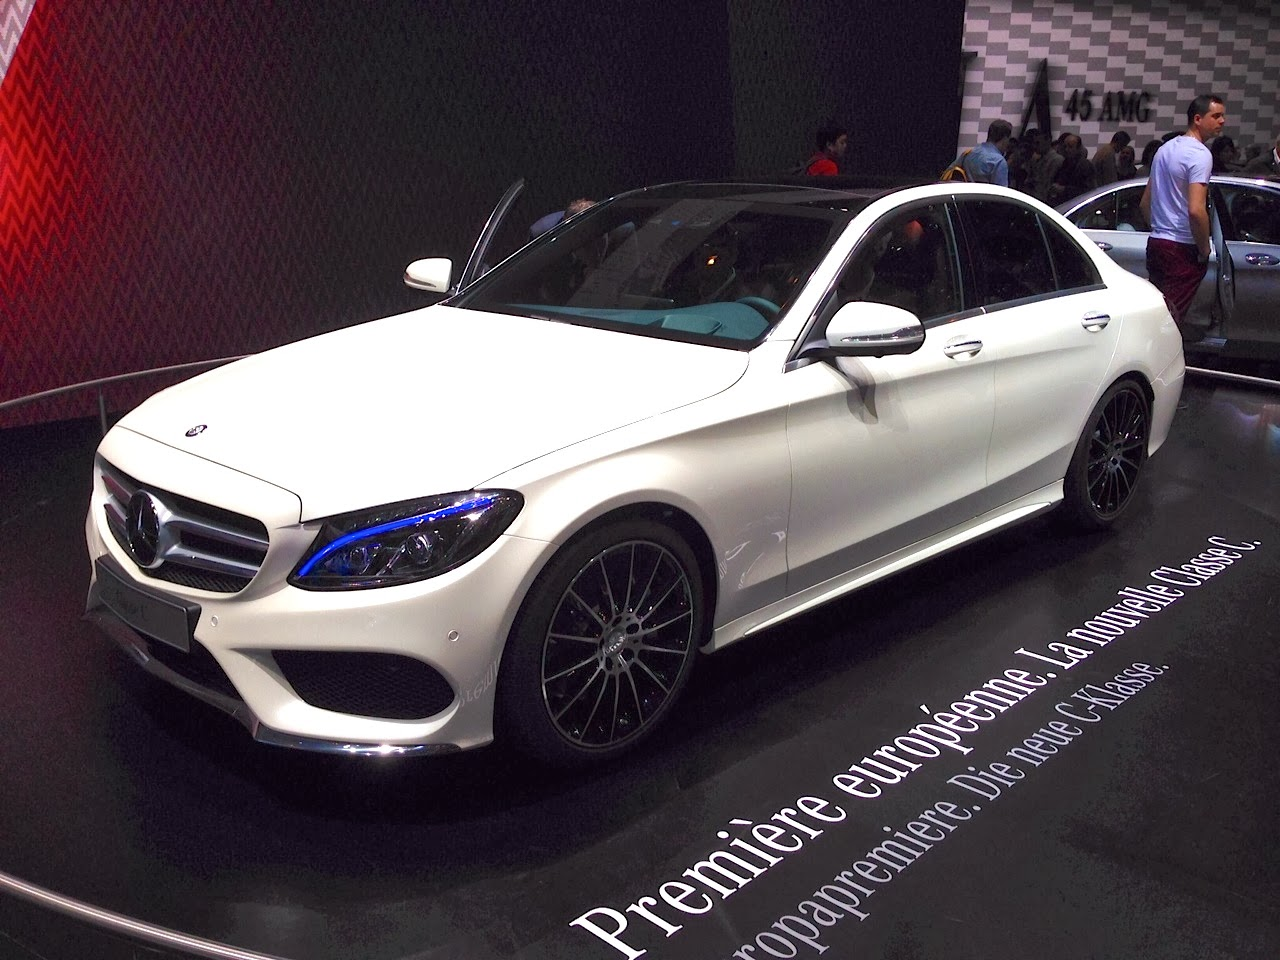 The new Mercedes C Class was on display at Geneva